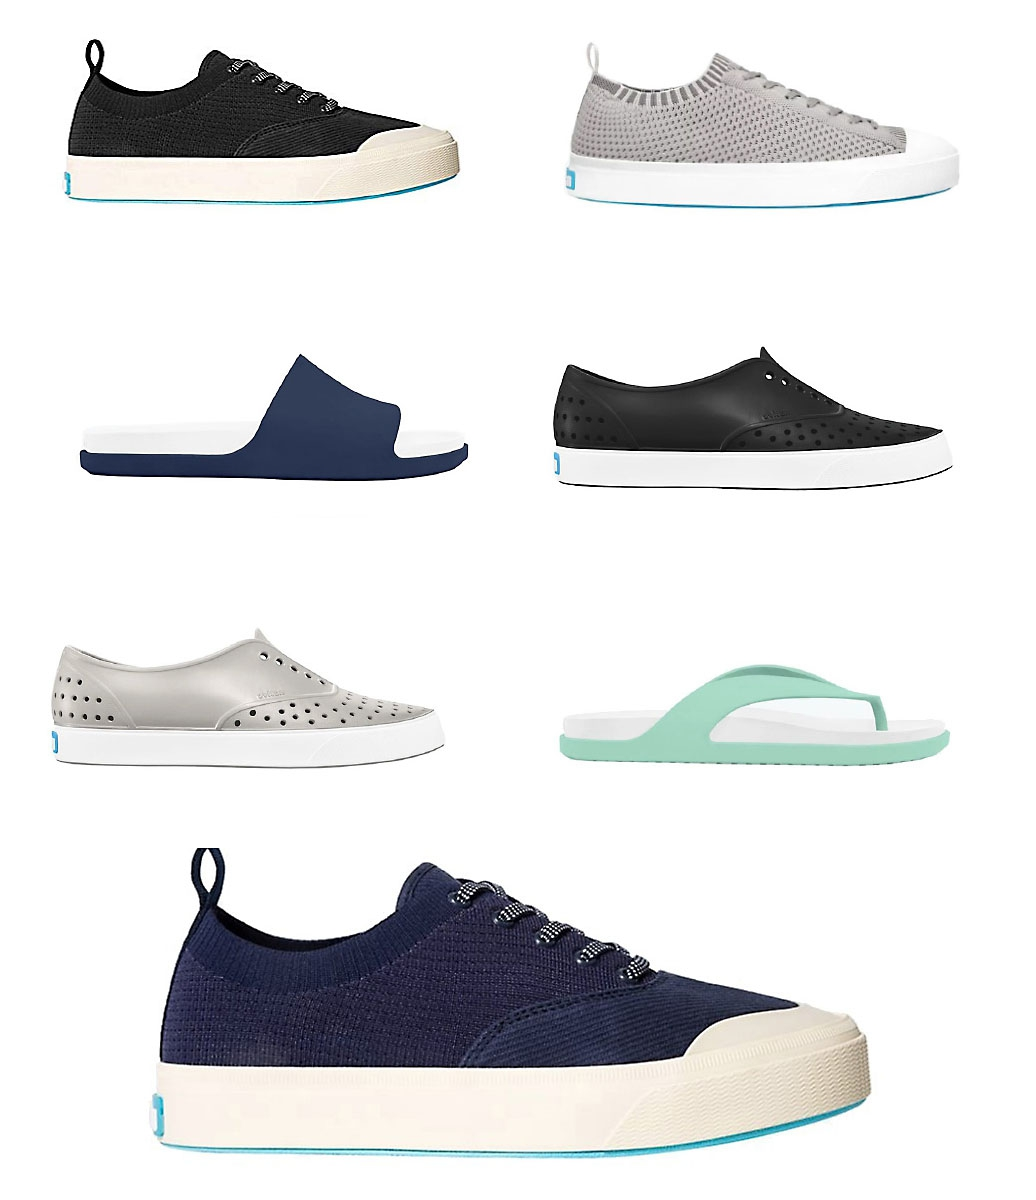 Vegane SNEAKER von NATIVE SHOES | Jetzt im SALE | Native Shoes online shoppen